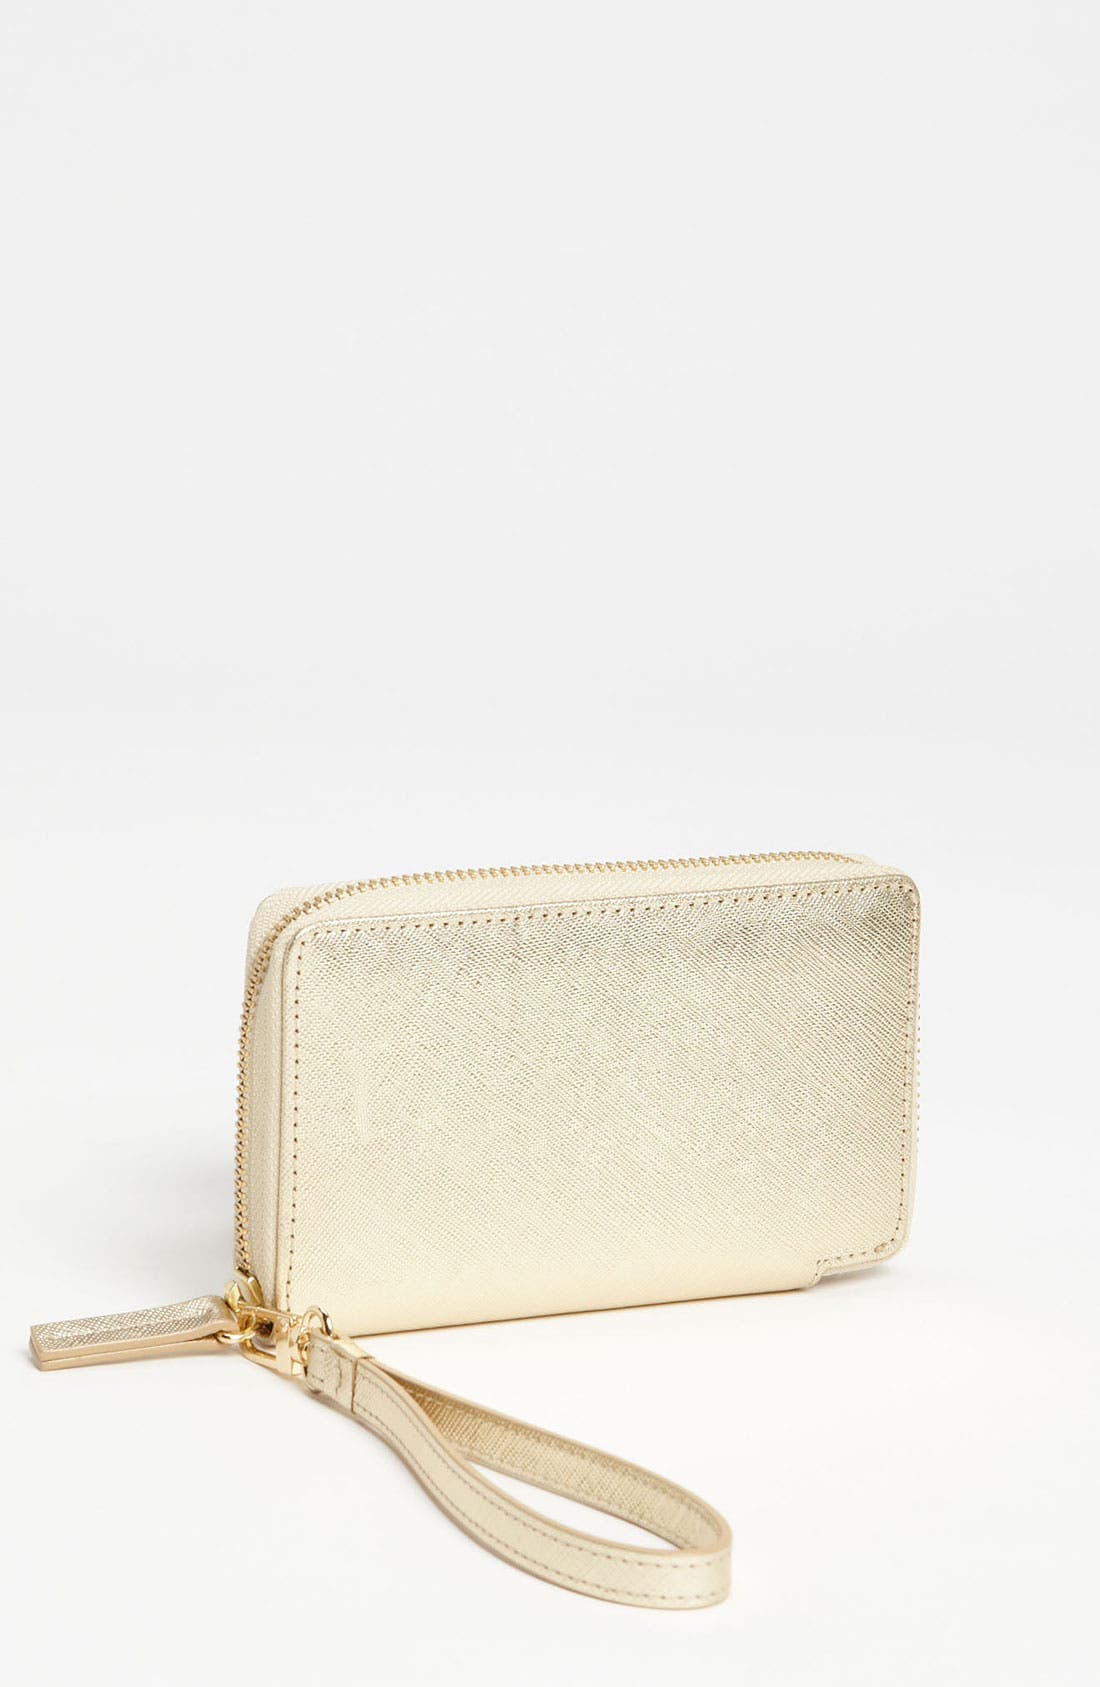 Alternate Image 1 Selected - Halogen® 'Cassie - Small' Leather Wristlet